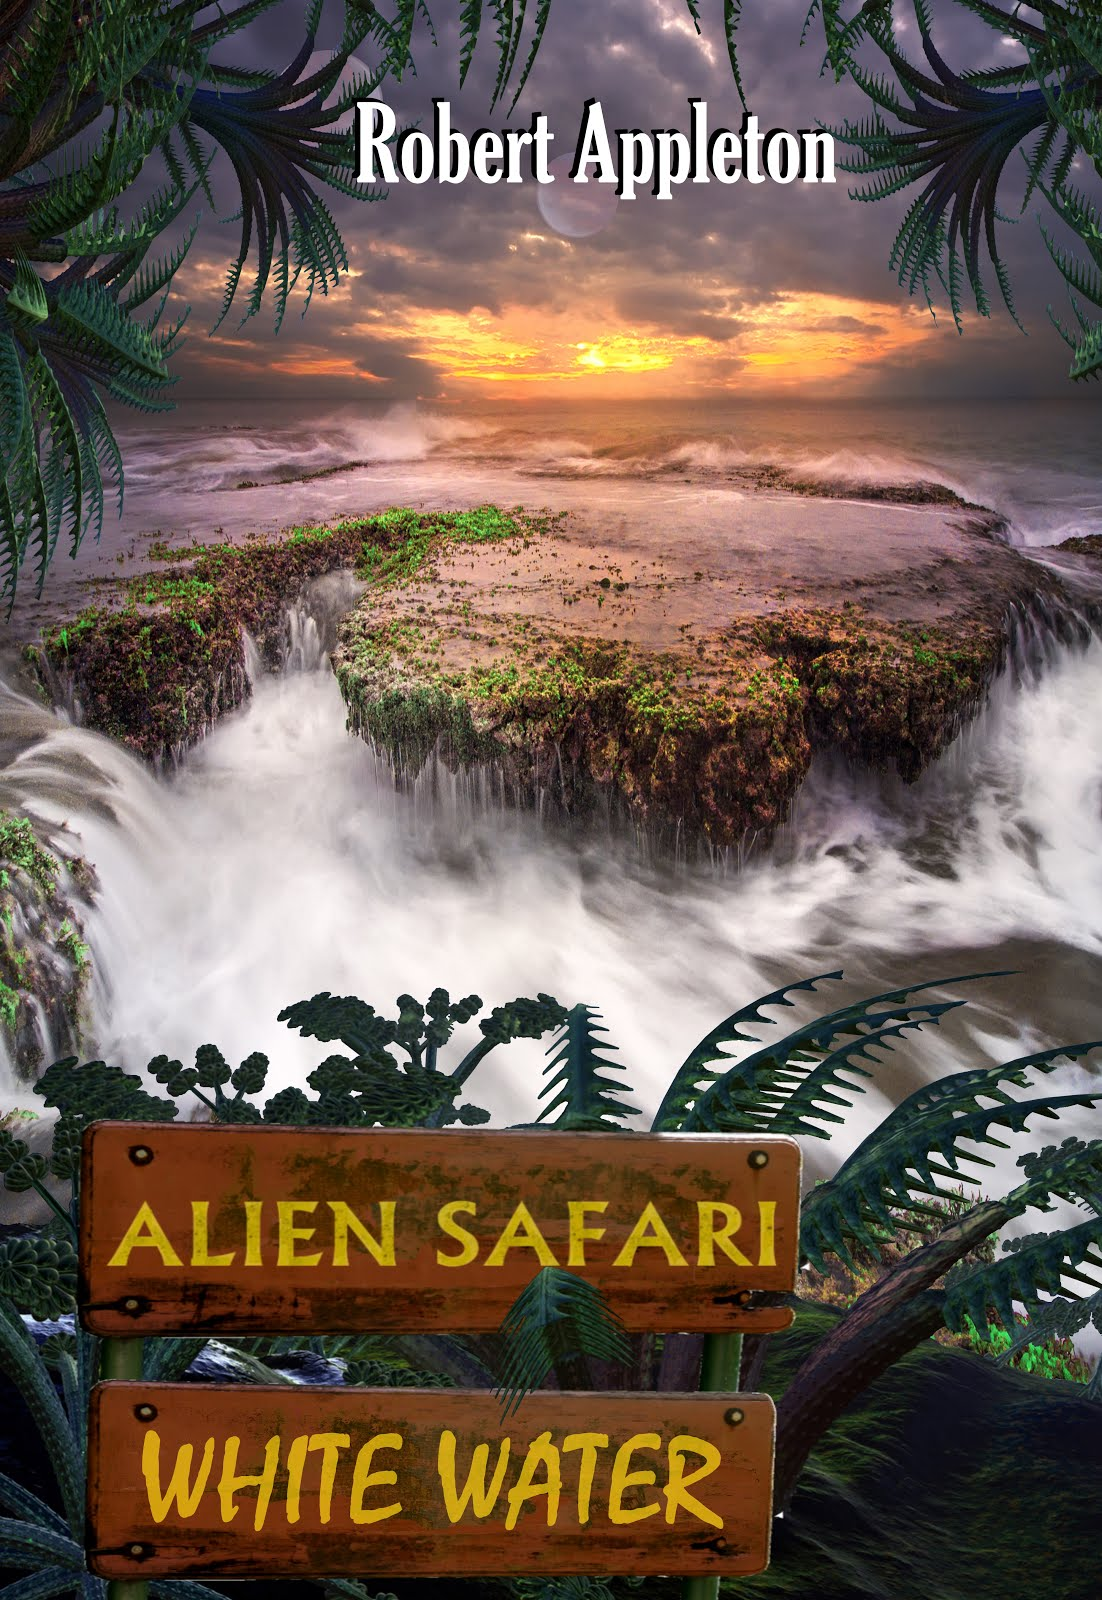 Alien Safari: White Water